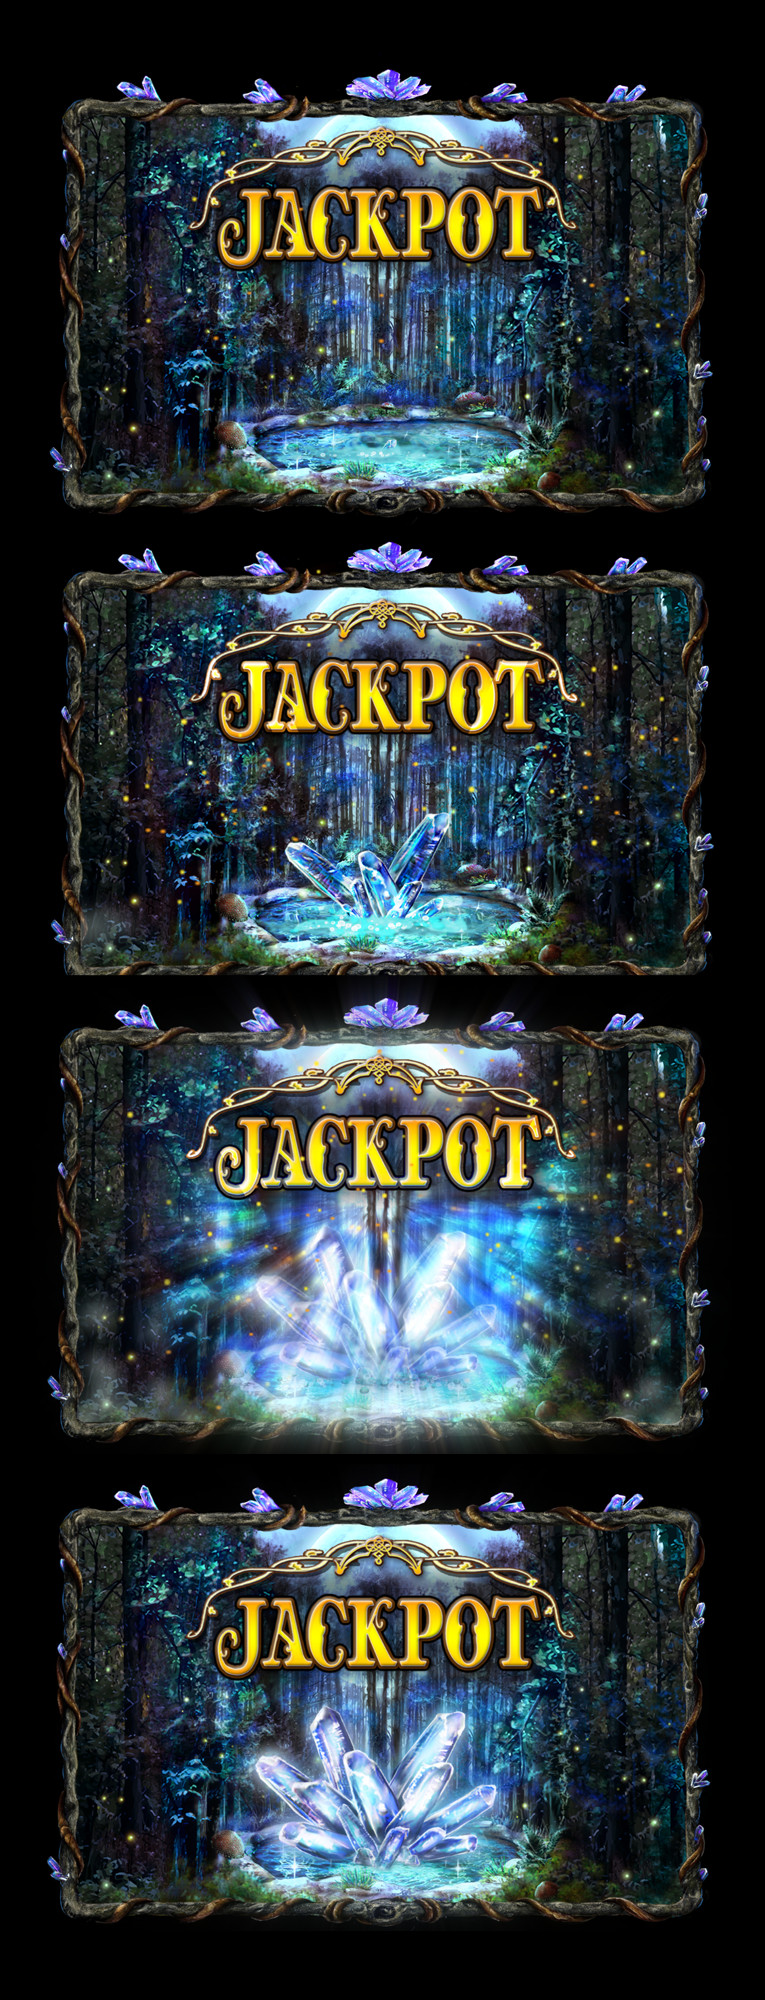 Stills from jackpot animation